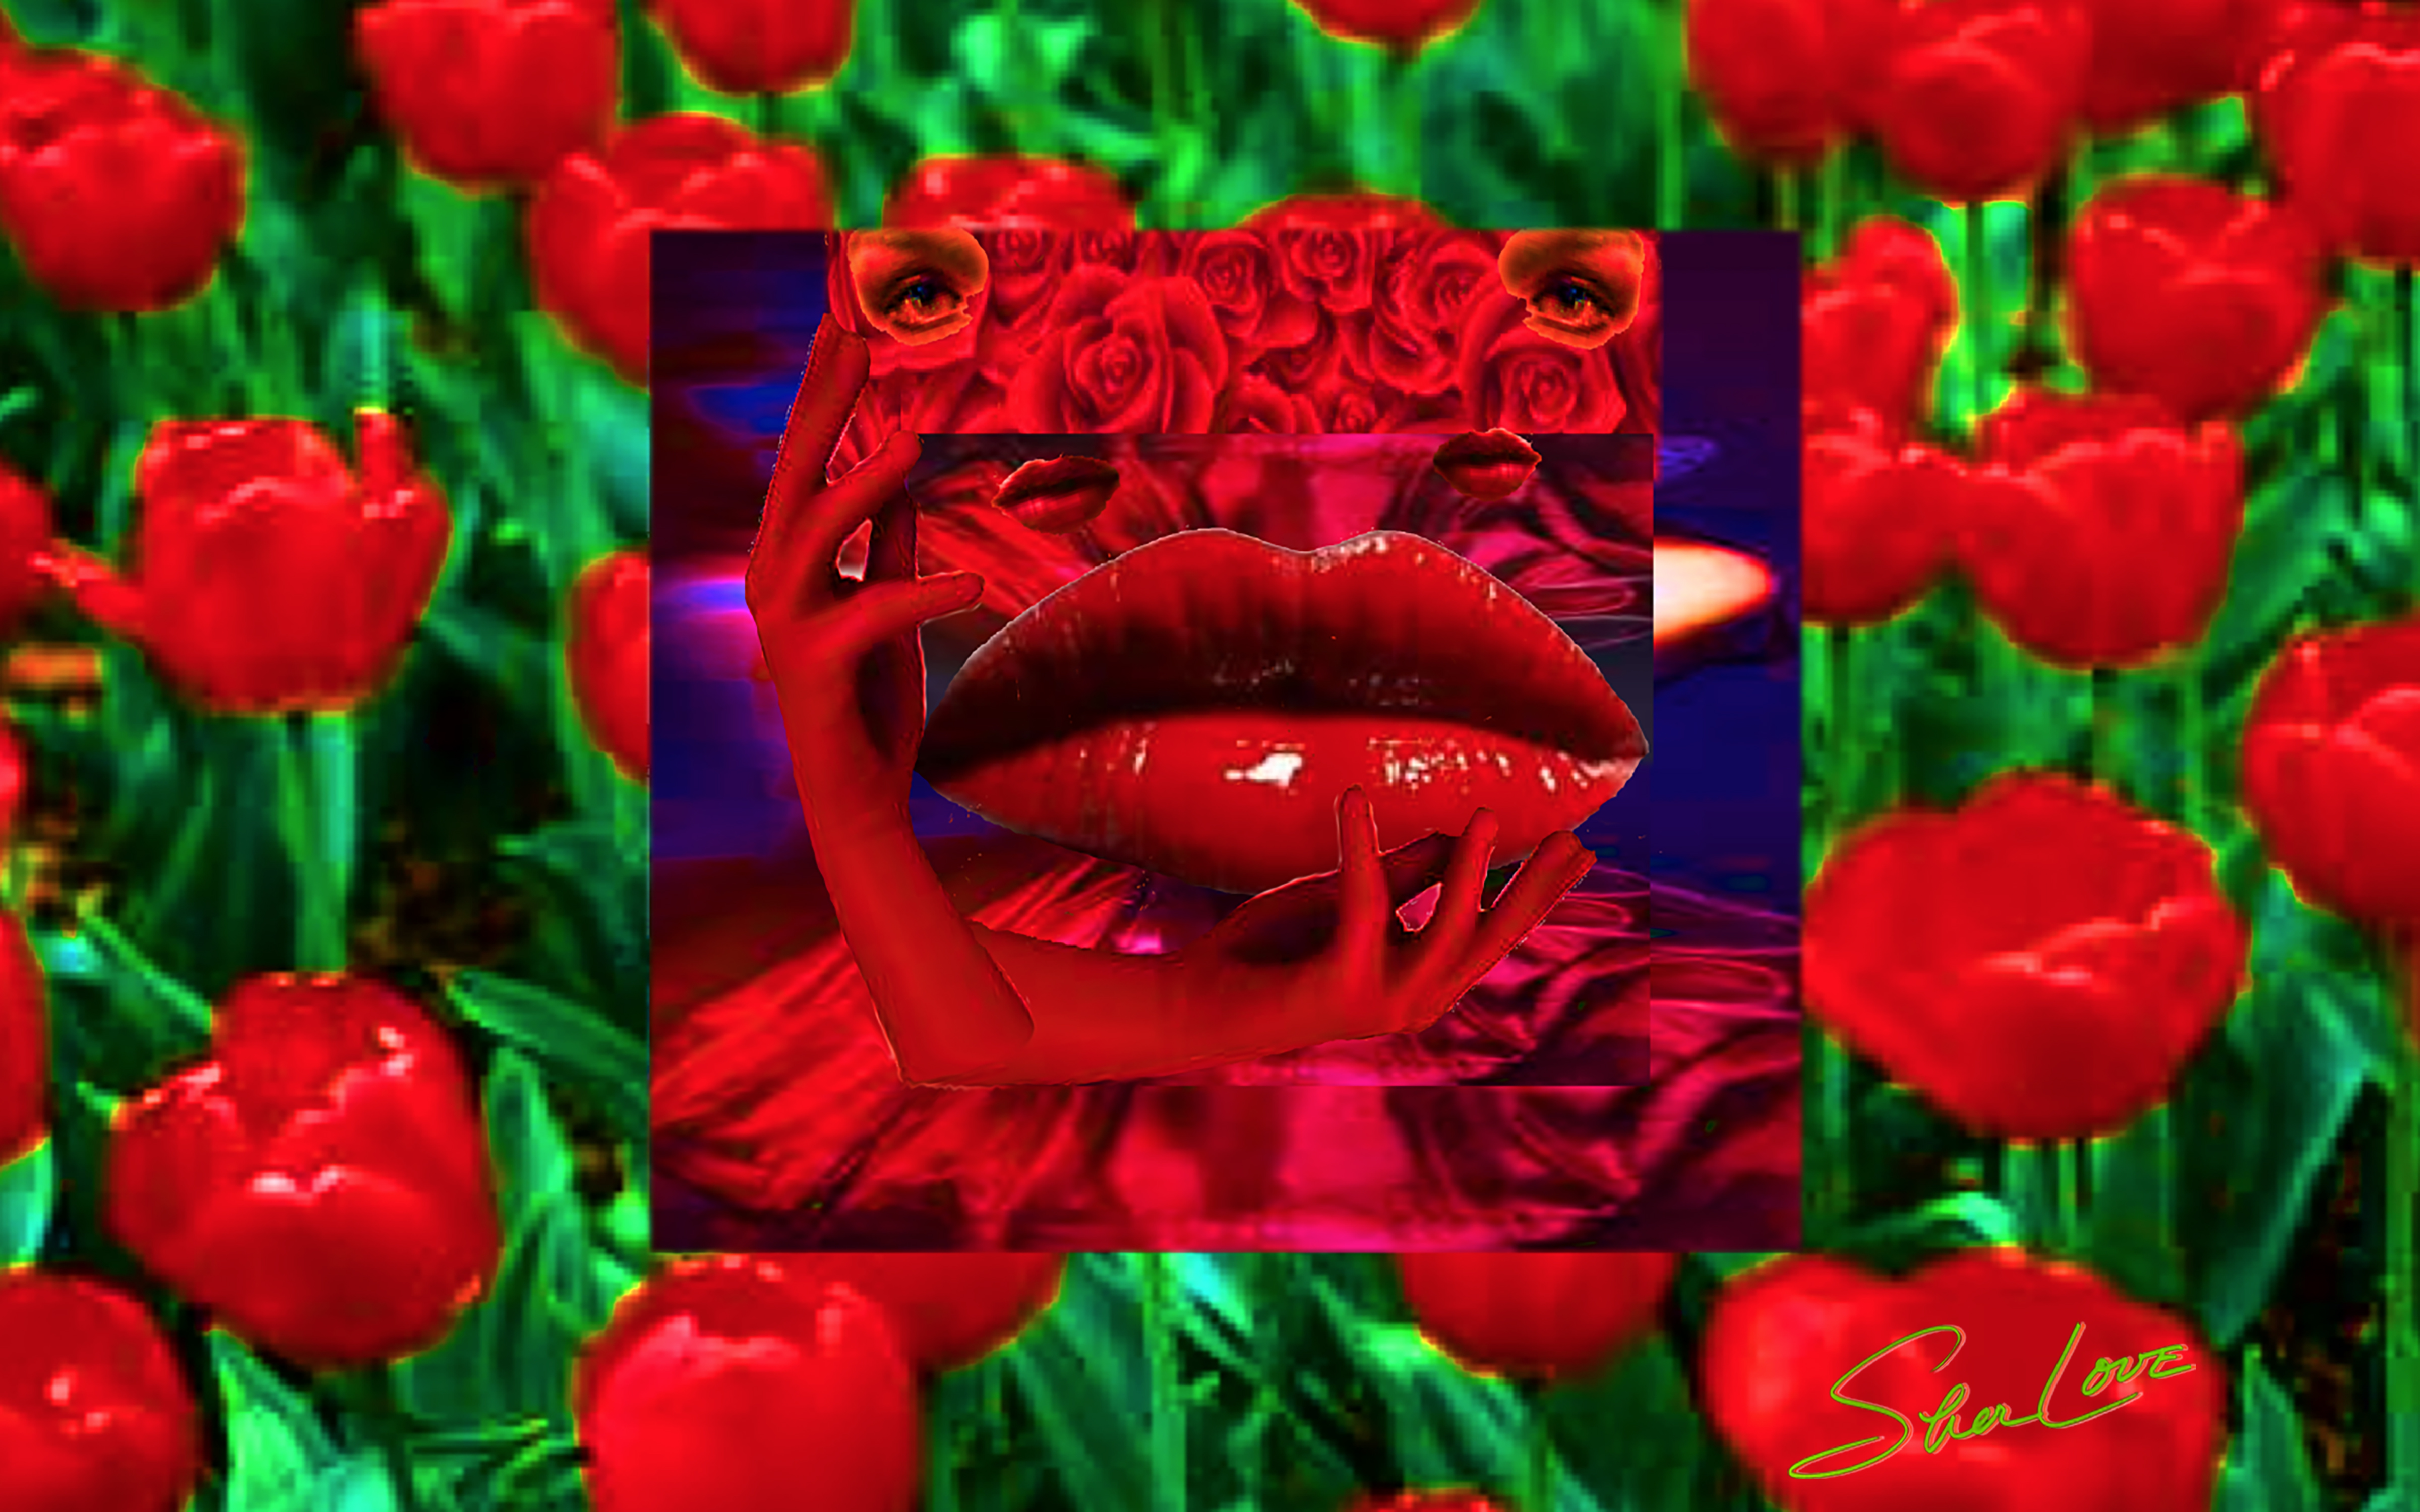 New 2 Lips Sher Love Collage